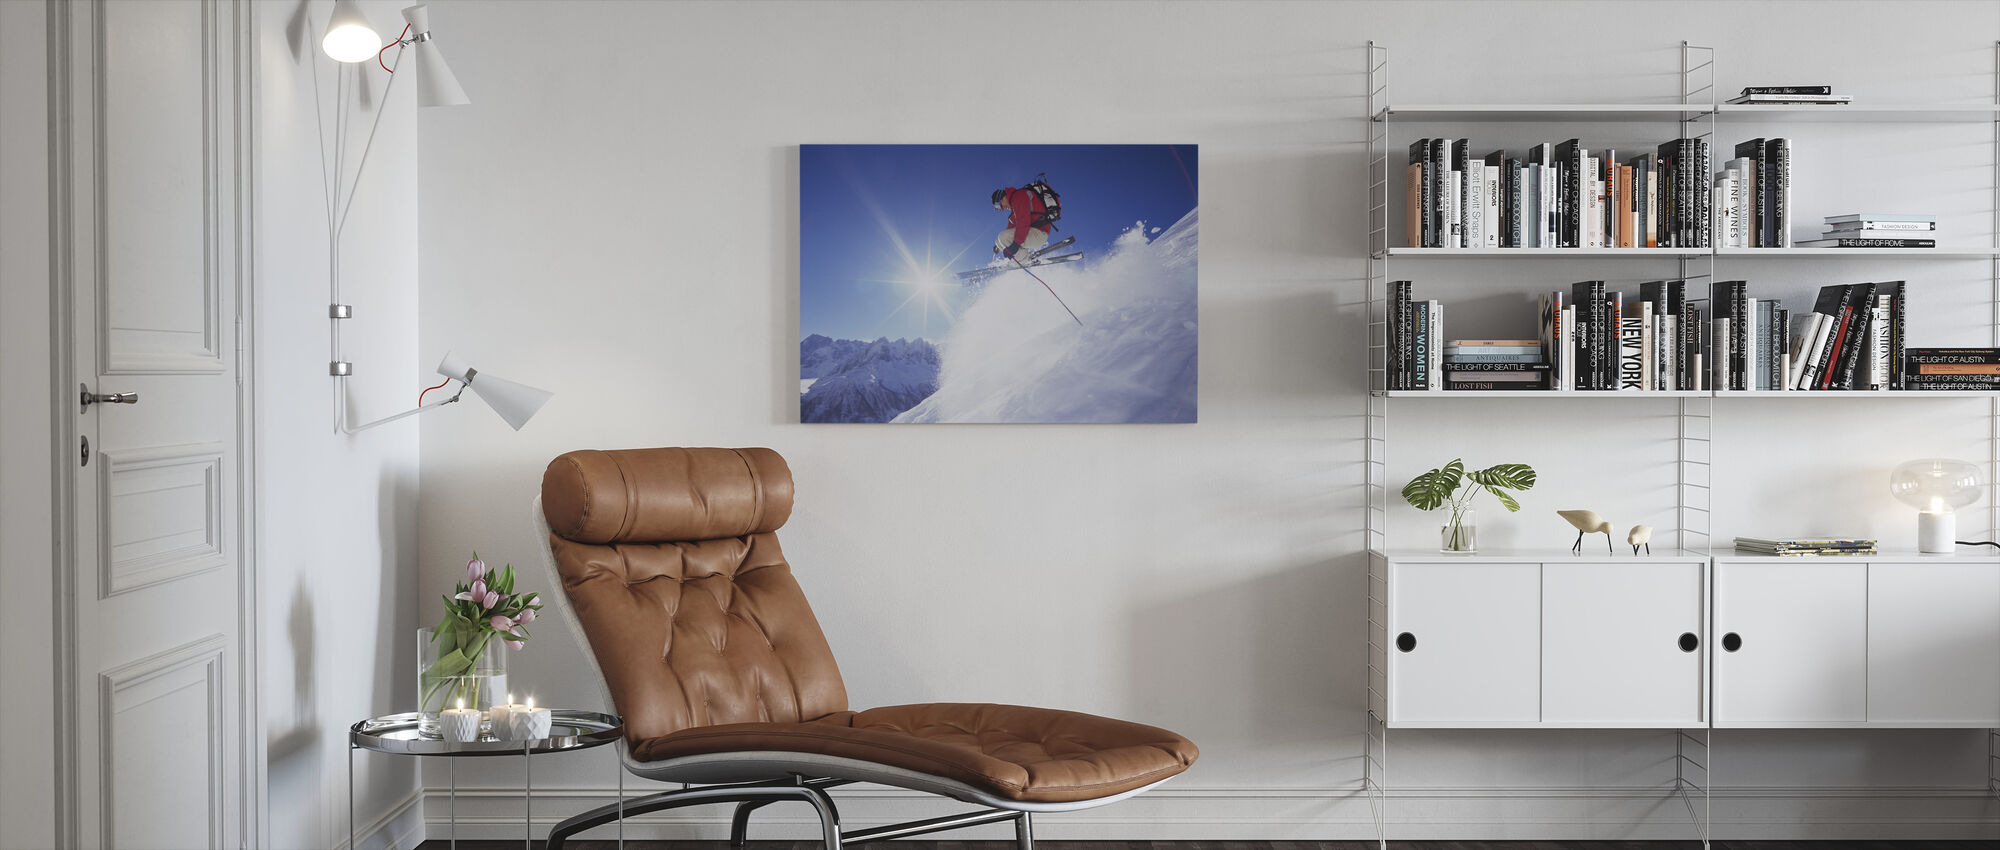 Adrenaline Skiing - Canvas print - Living Room